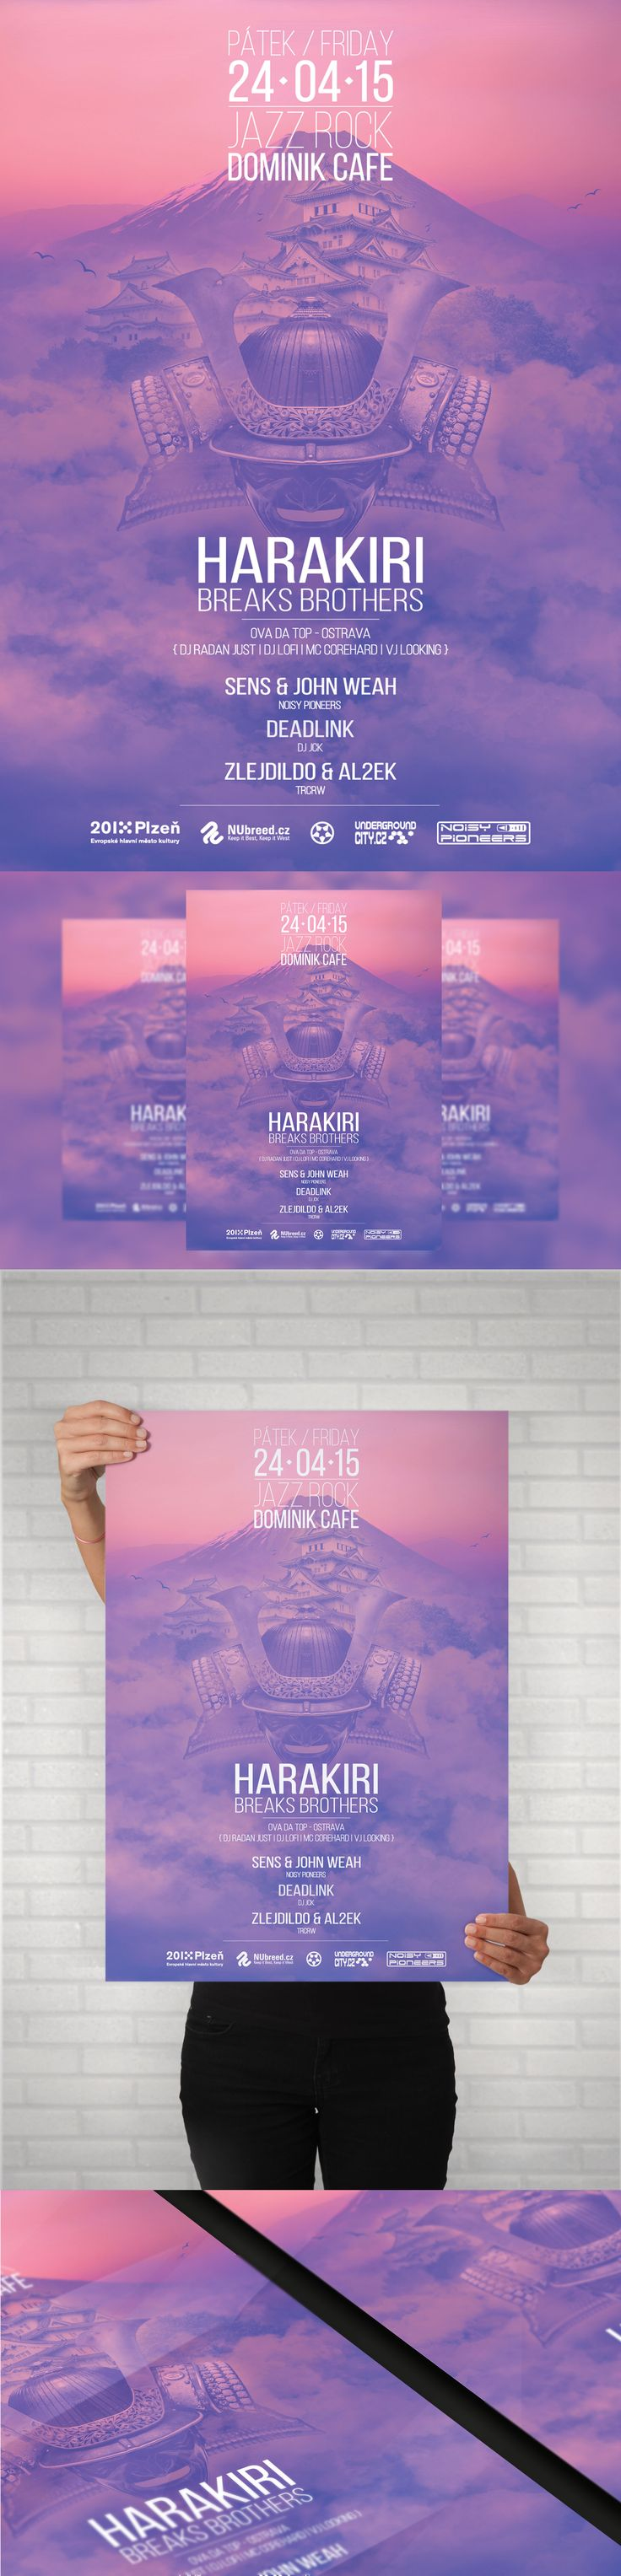 Harakiri Breaks Brothers  Electronic music event - A4 Poster, Facebook event header and preview. #poster #posterdesign #fbheader #graphicdesign